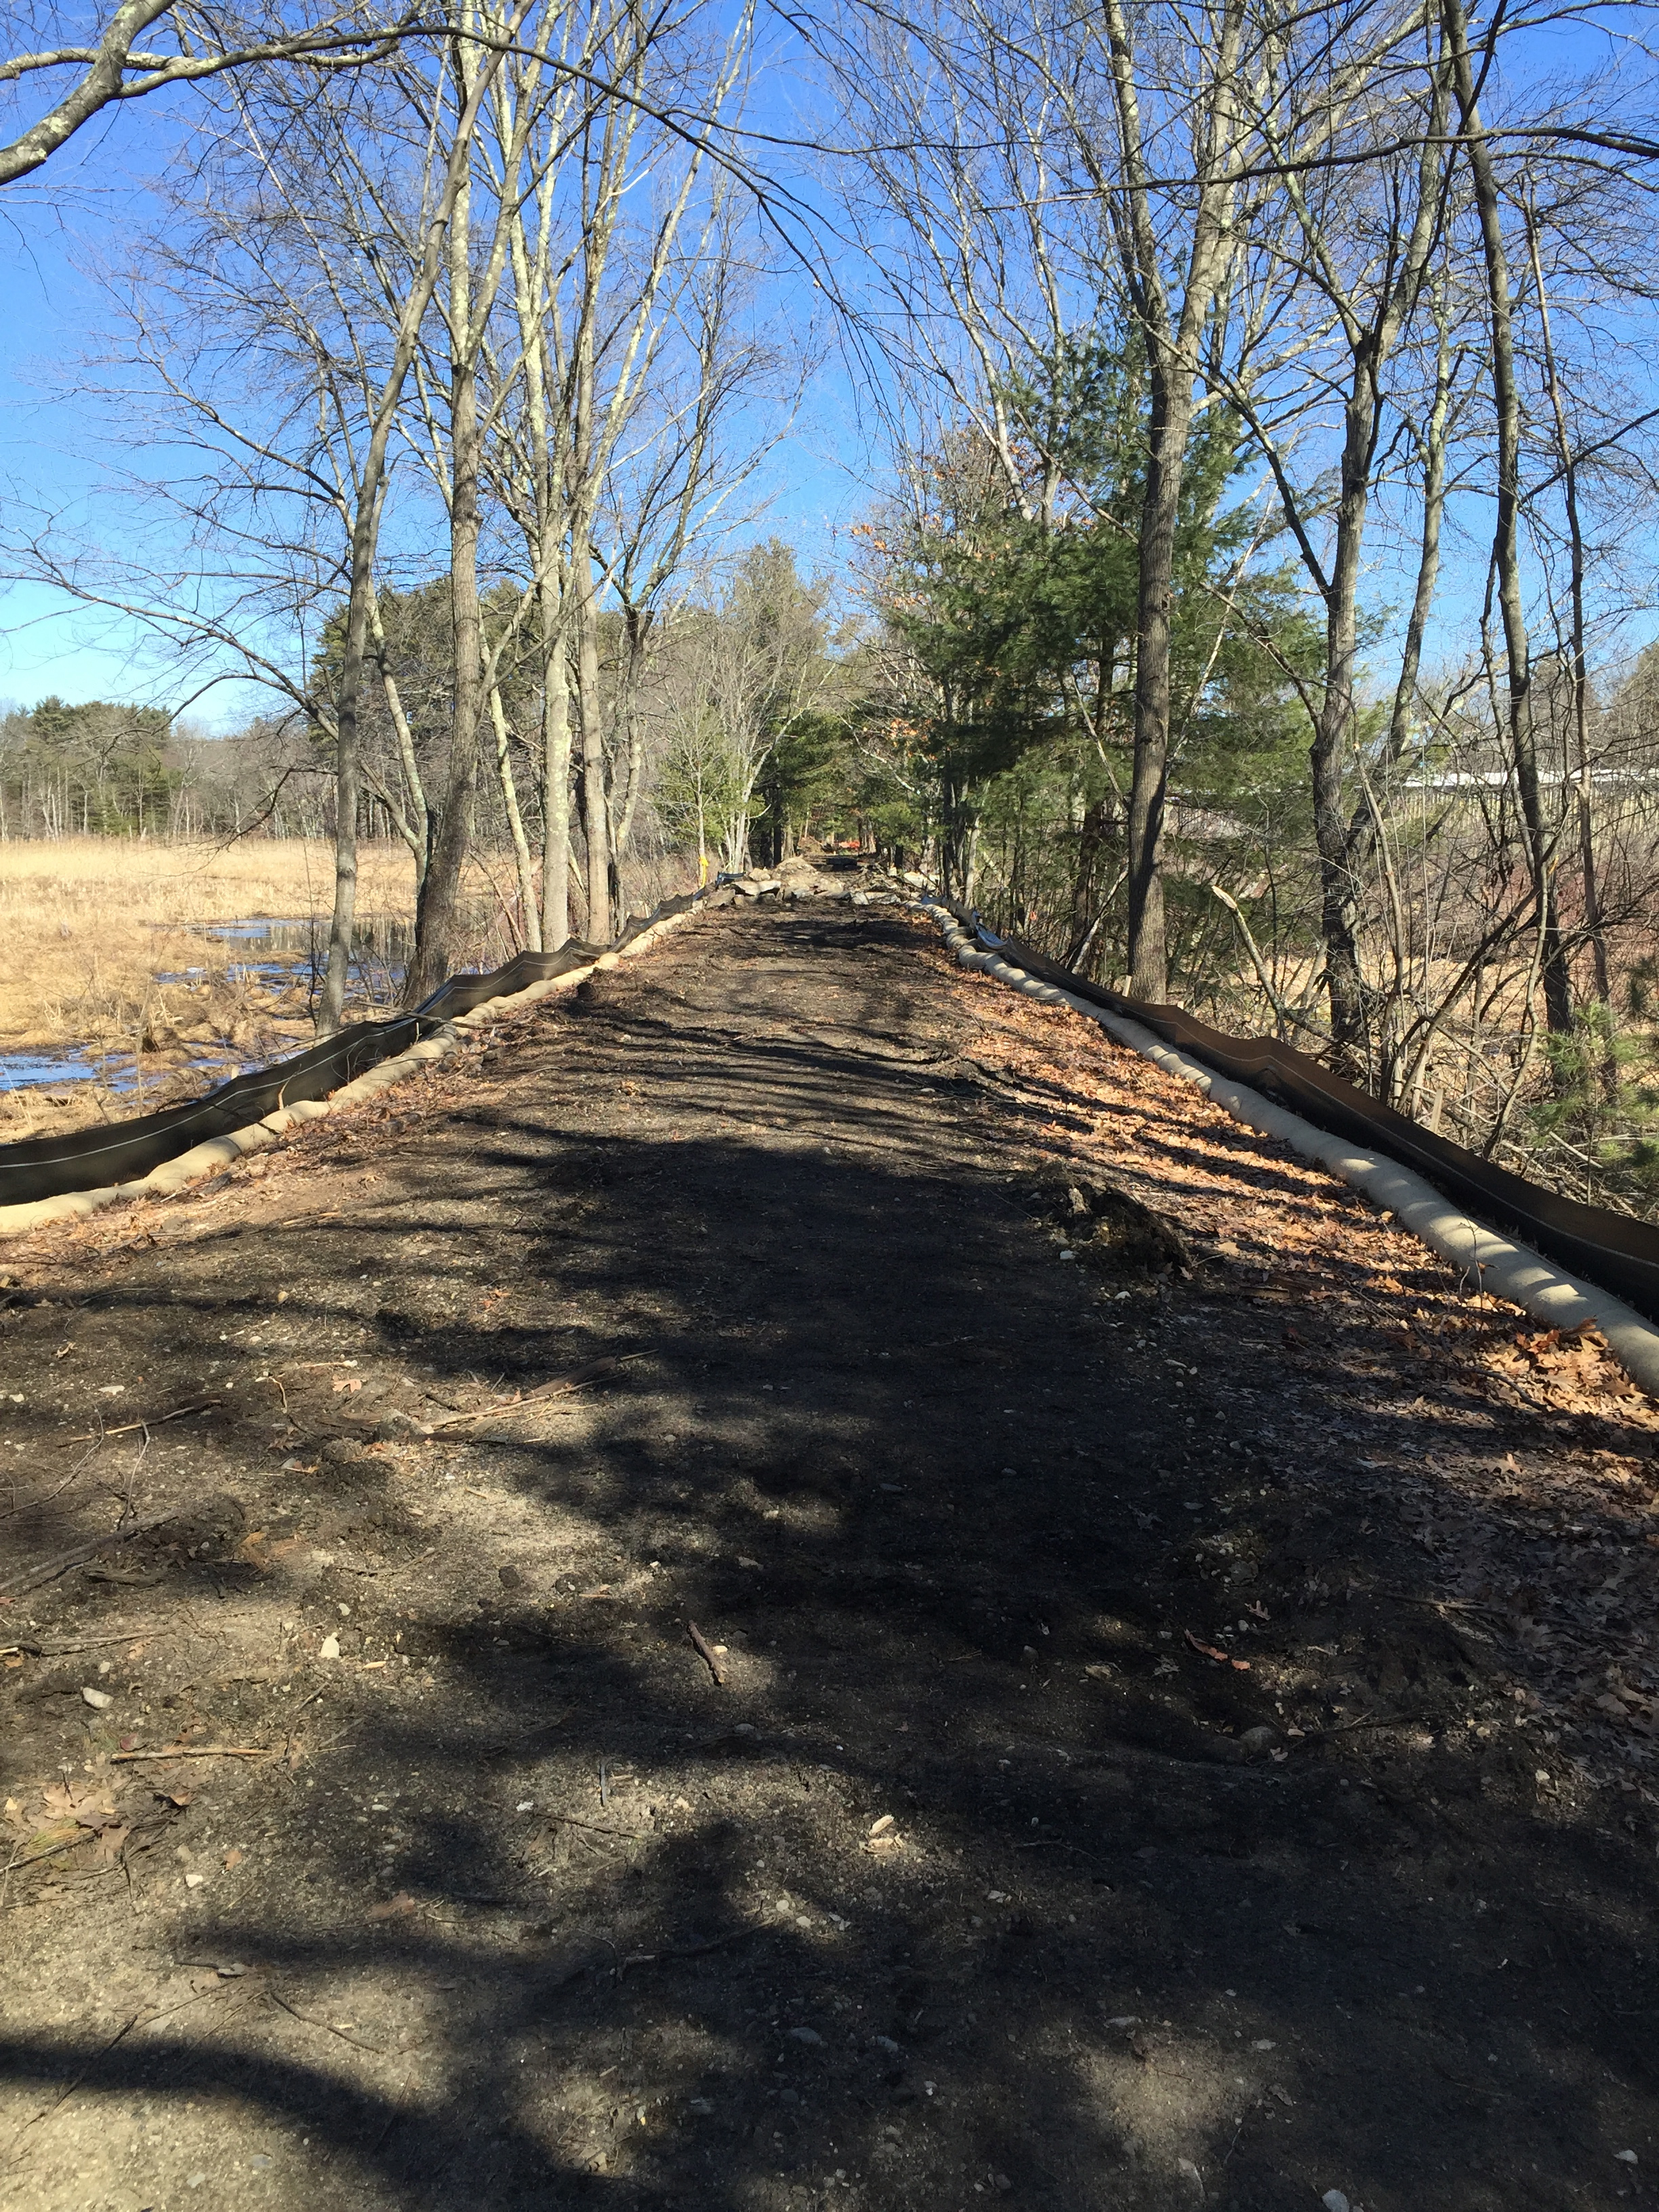 A section of the trail near Nashoba Sportman's Club in Acton. March 2016